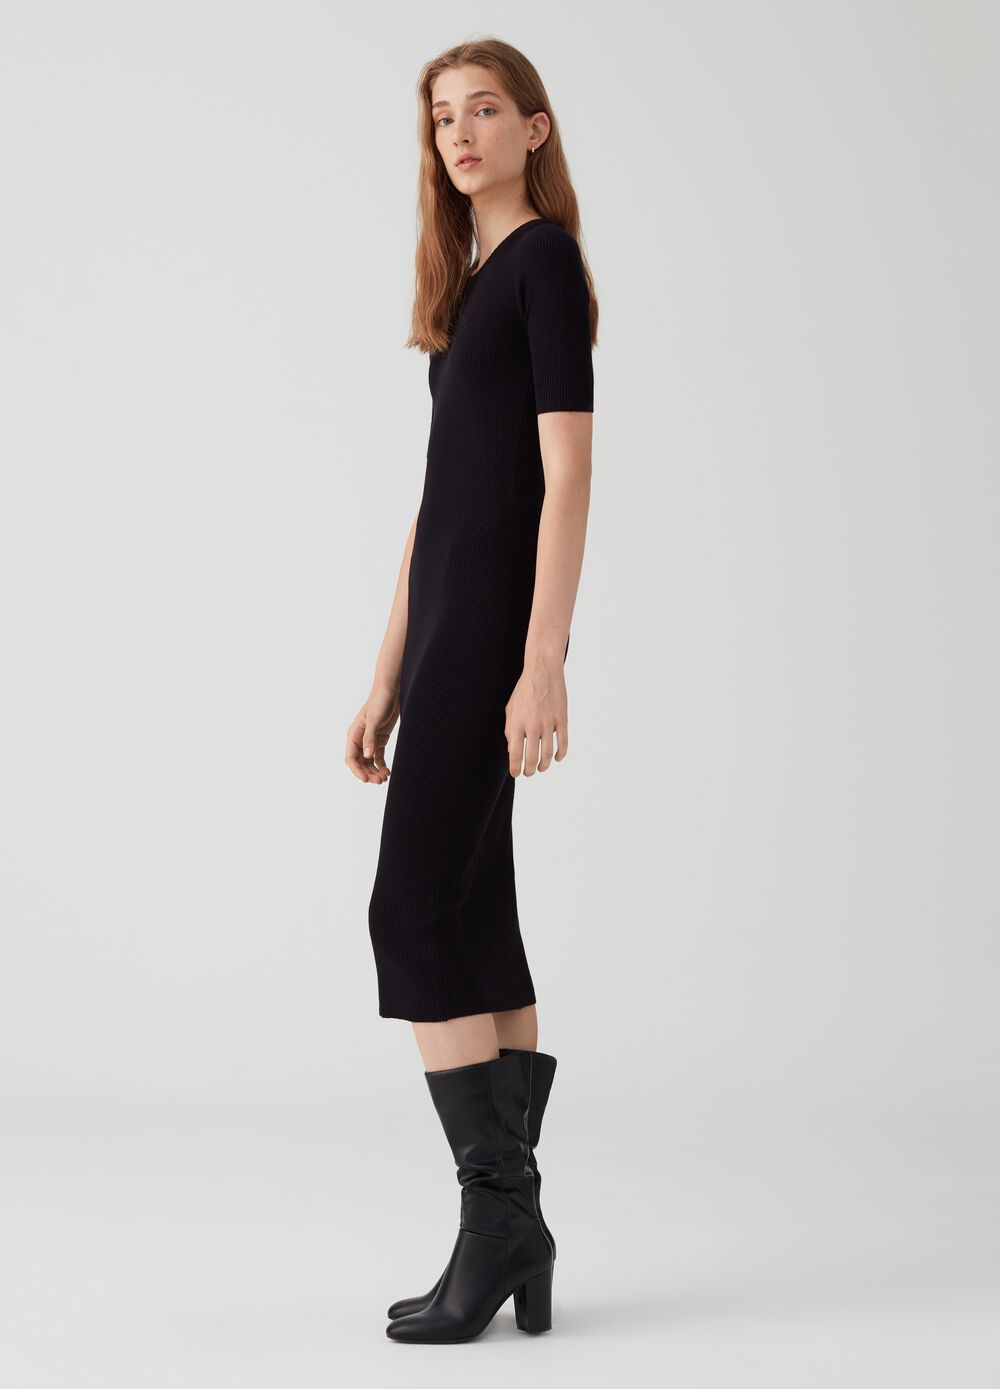 Ribbed dress with elbow-length sleeves